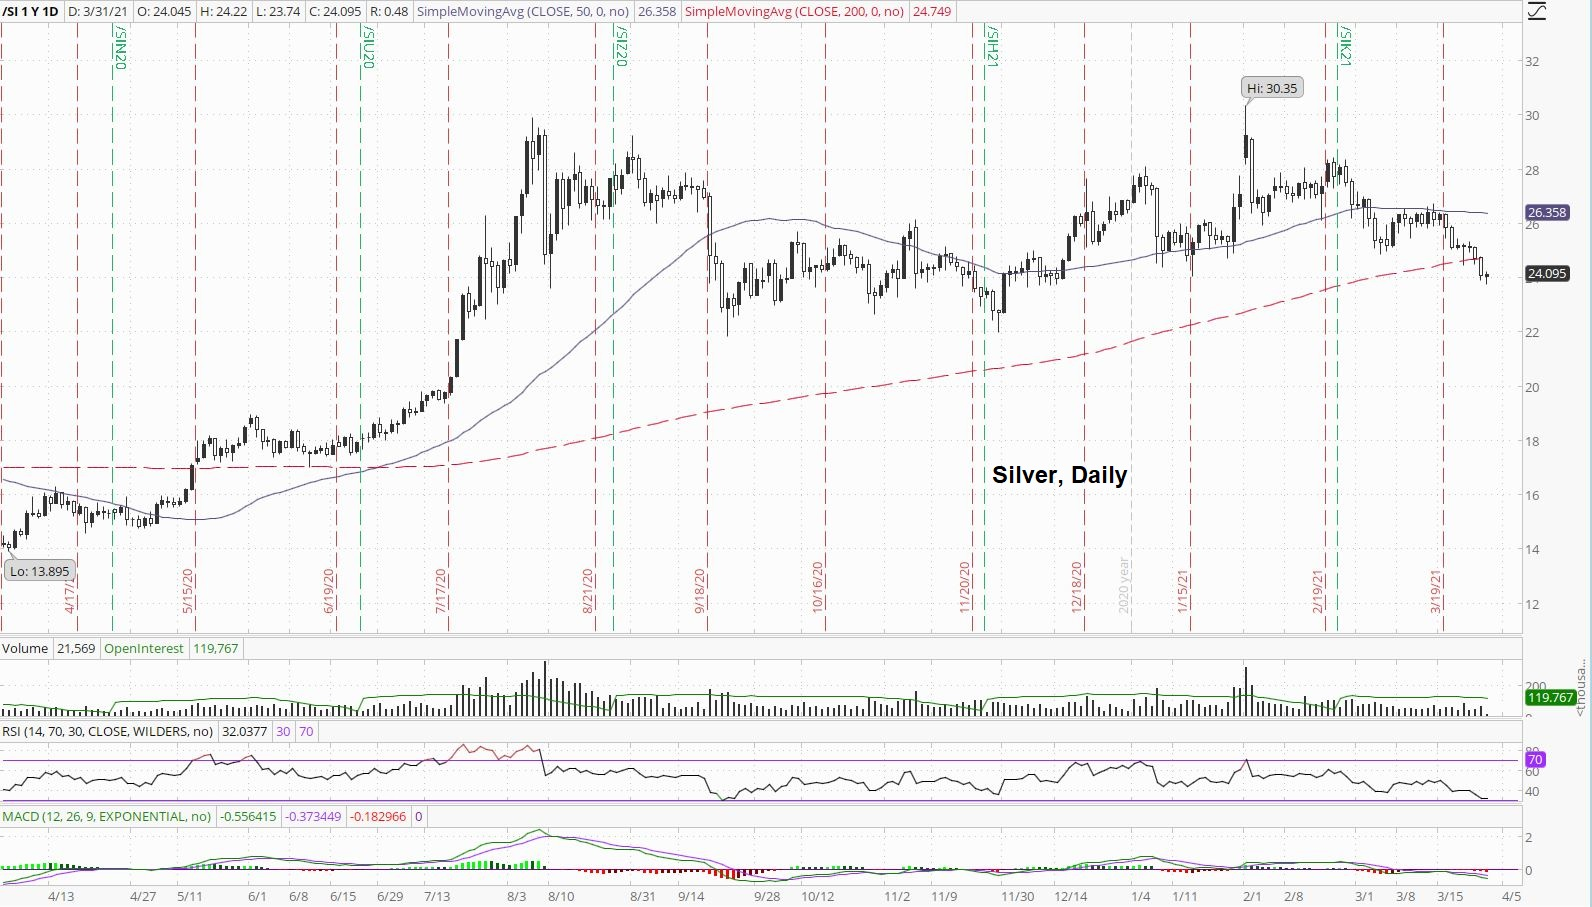 Daily Silver Price